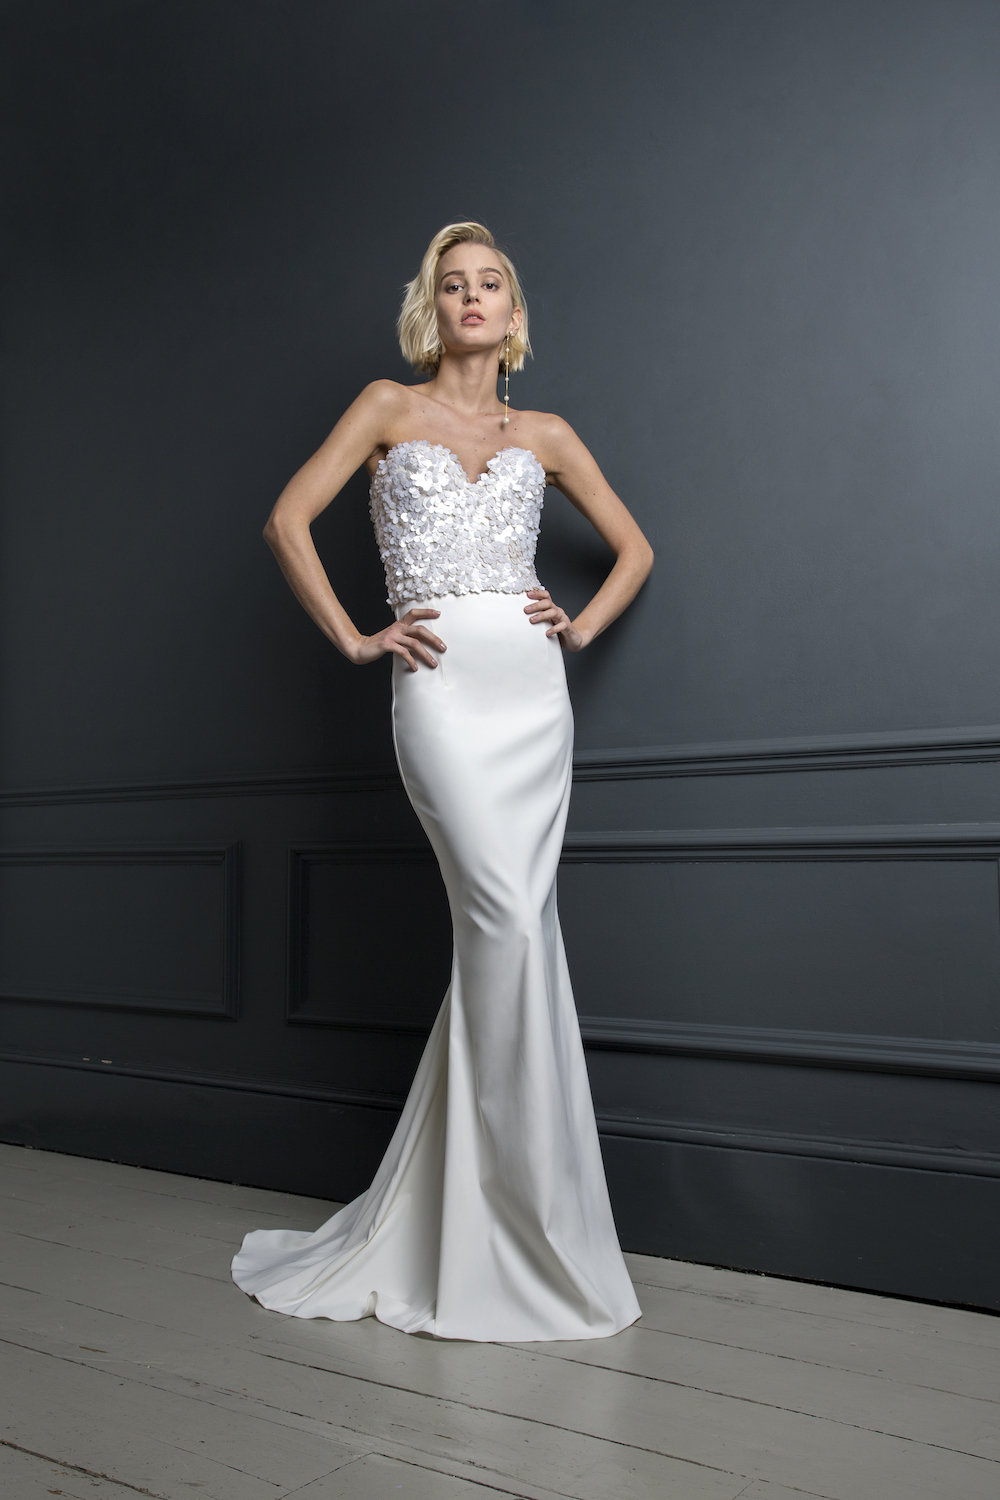 ALEXANDER CORSET & TOBI SKIRT | WEDDING DRESS BY HALFPENNY LONDON